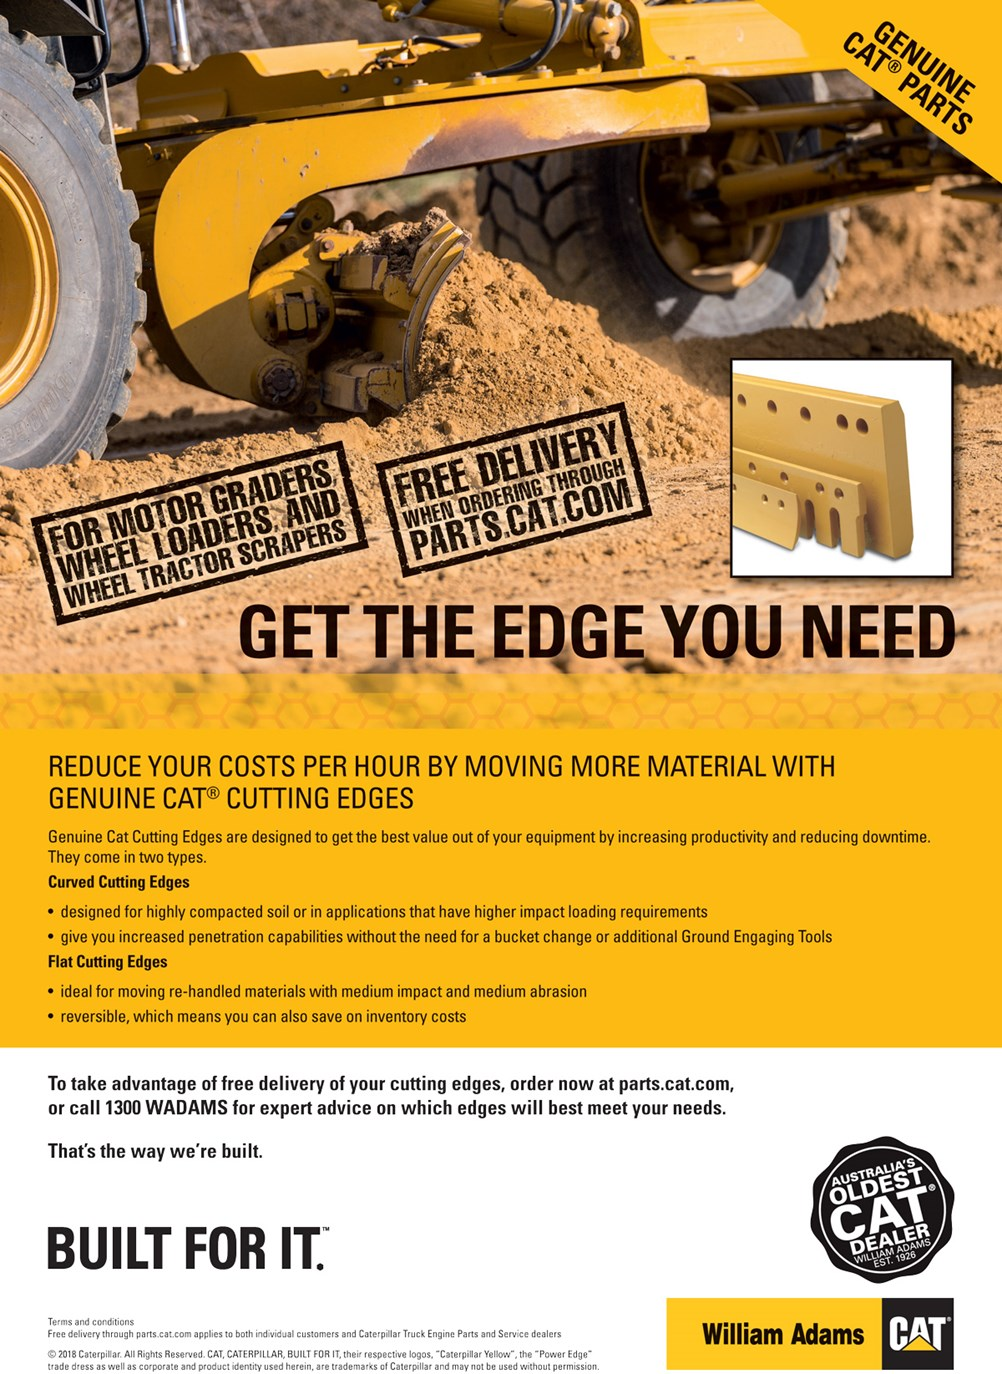 Genuine Cat Cutting Edges | William Adams Cat